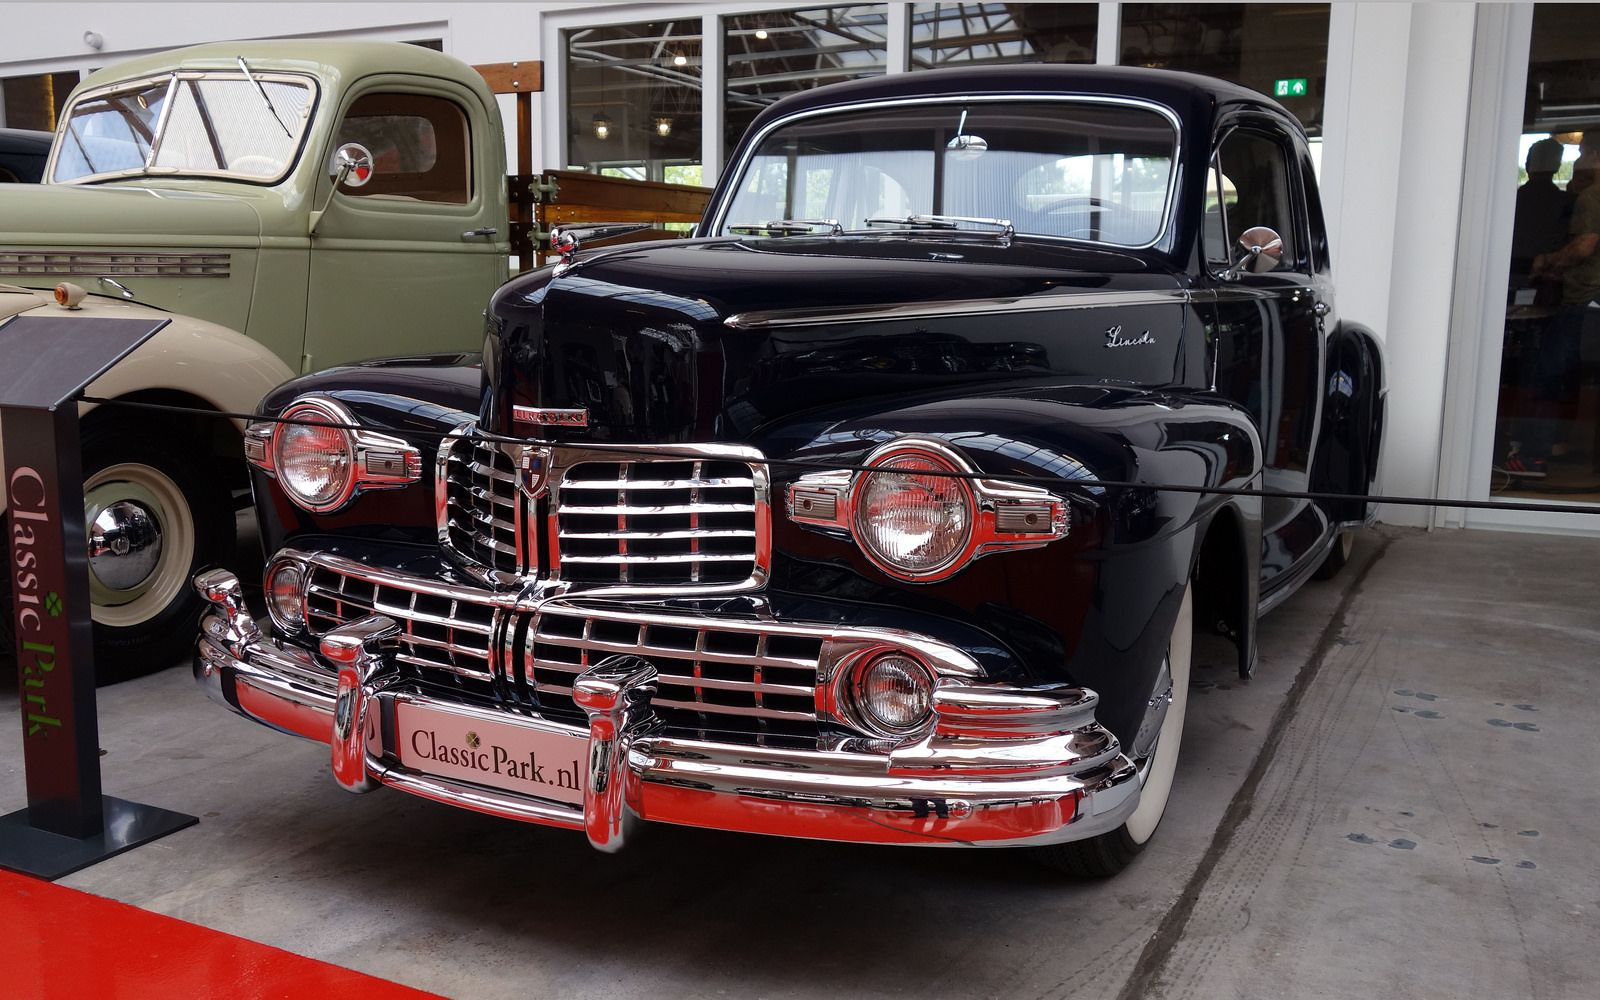 1947 Lincoln Club Coupe - Body Type 76H77 | American Cars of the ...